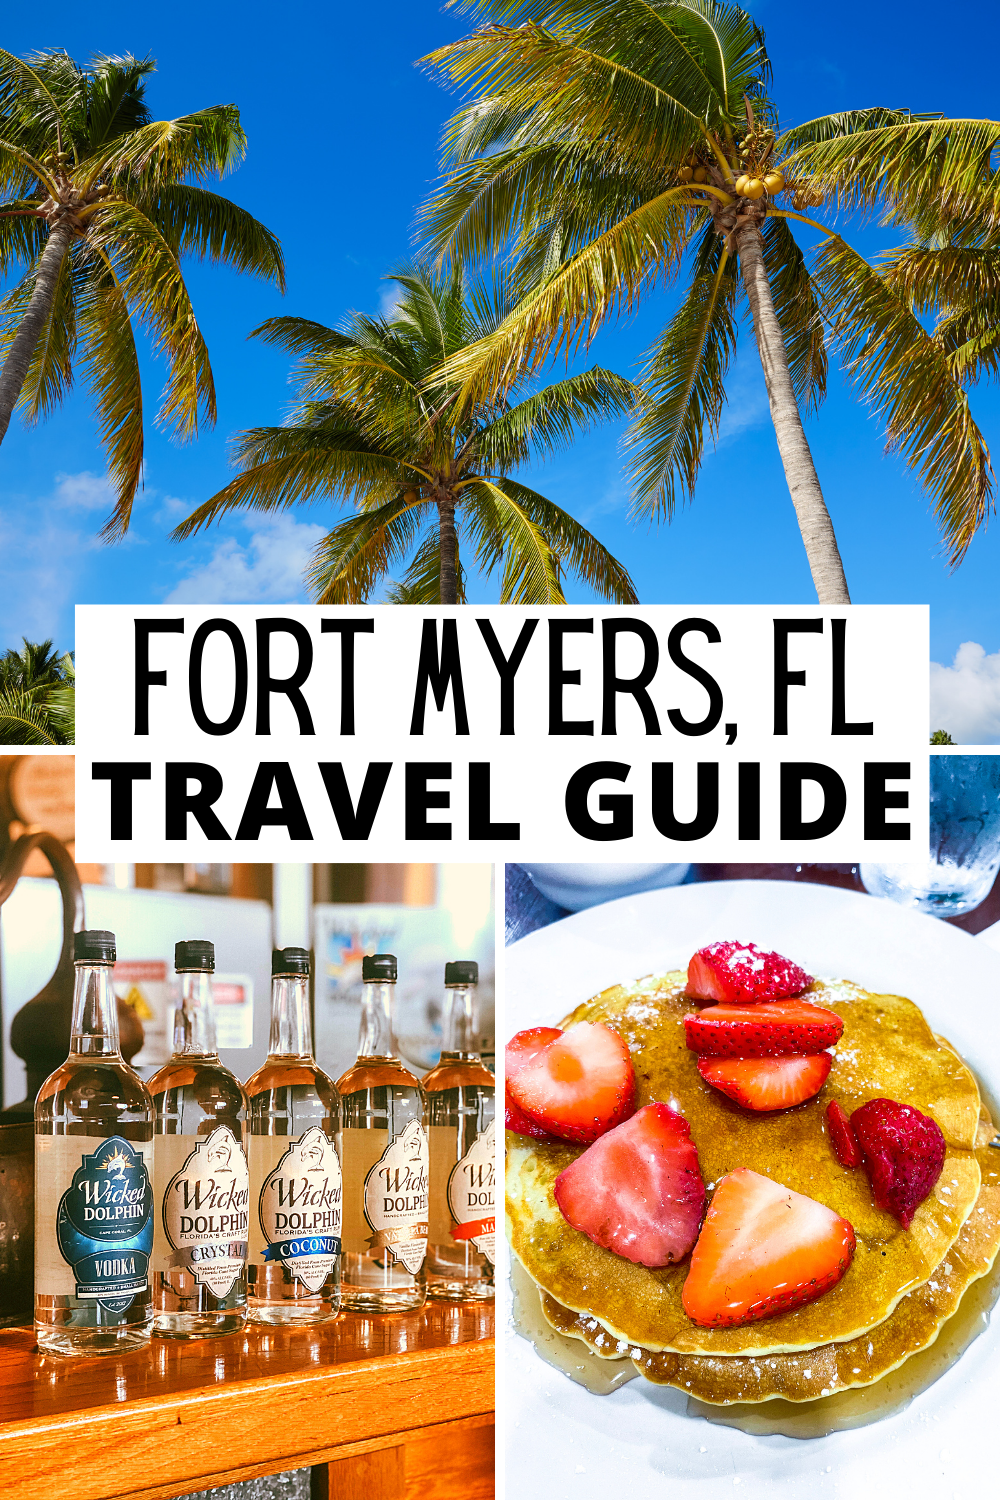 20+ Fun Things to do in Fort Myers and Sanibel, Florida for couples, families and friends! Enjoy the beaches, nature and more.